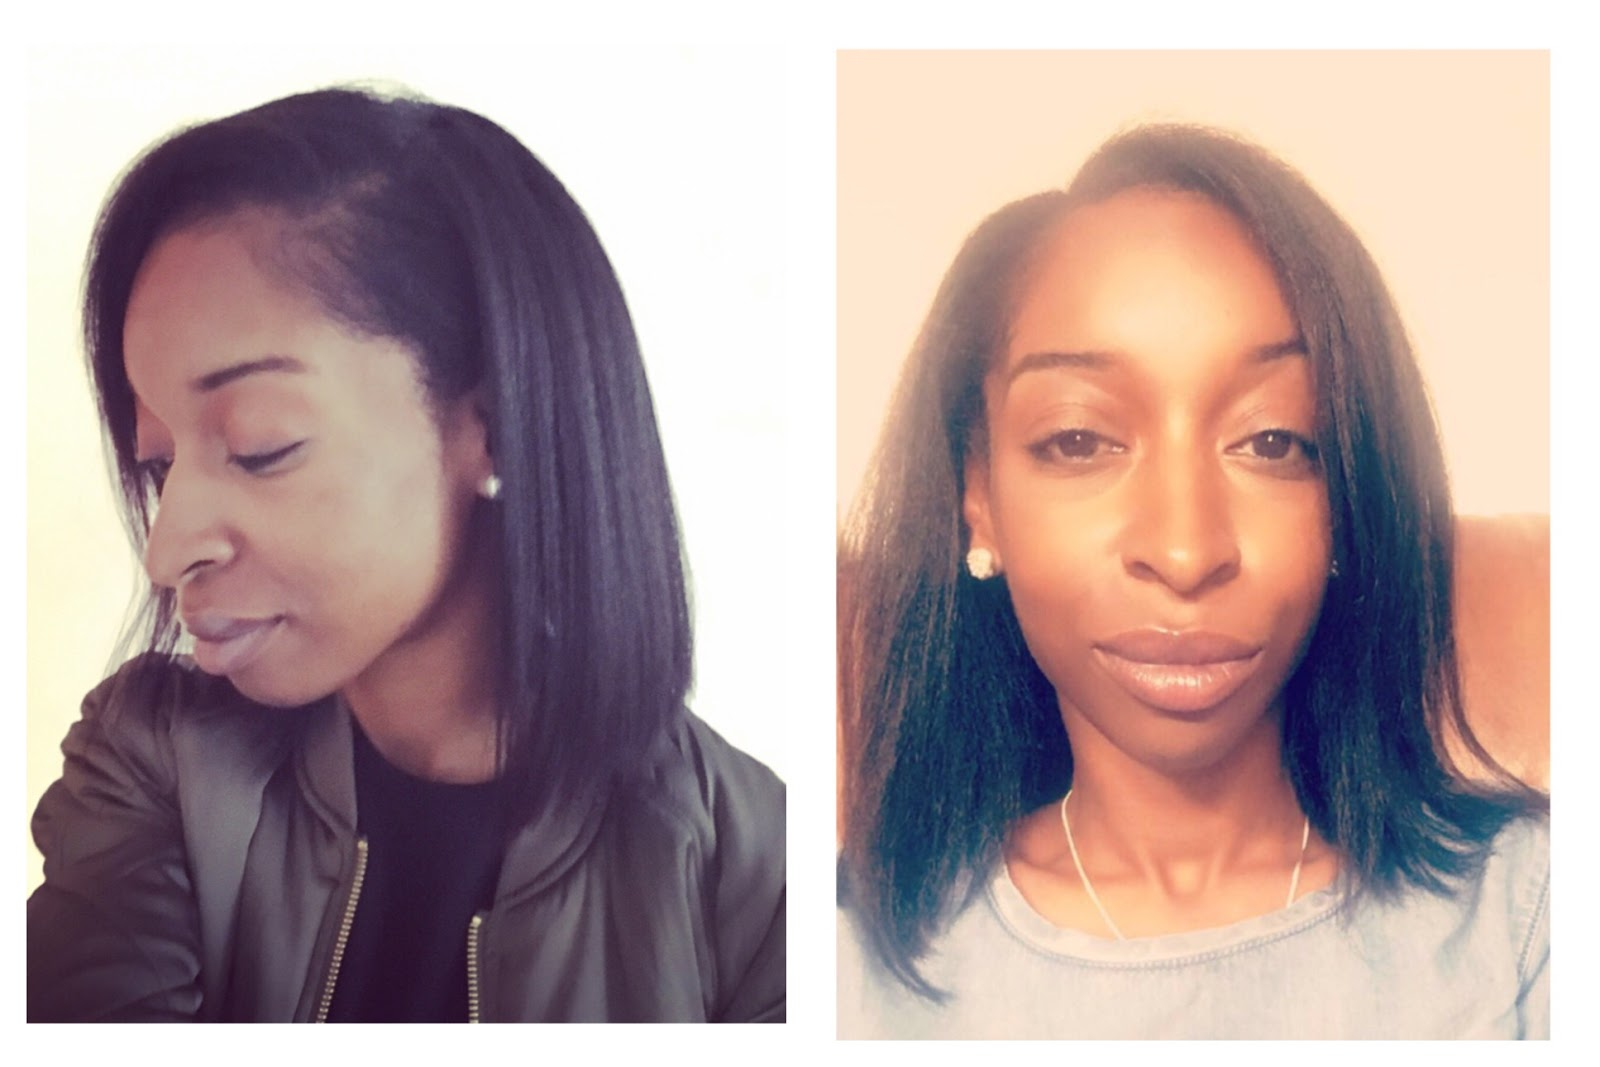 The Healthy Hair Diary: Mid-Neck Length To Shoulder Length